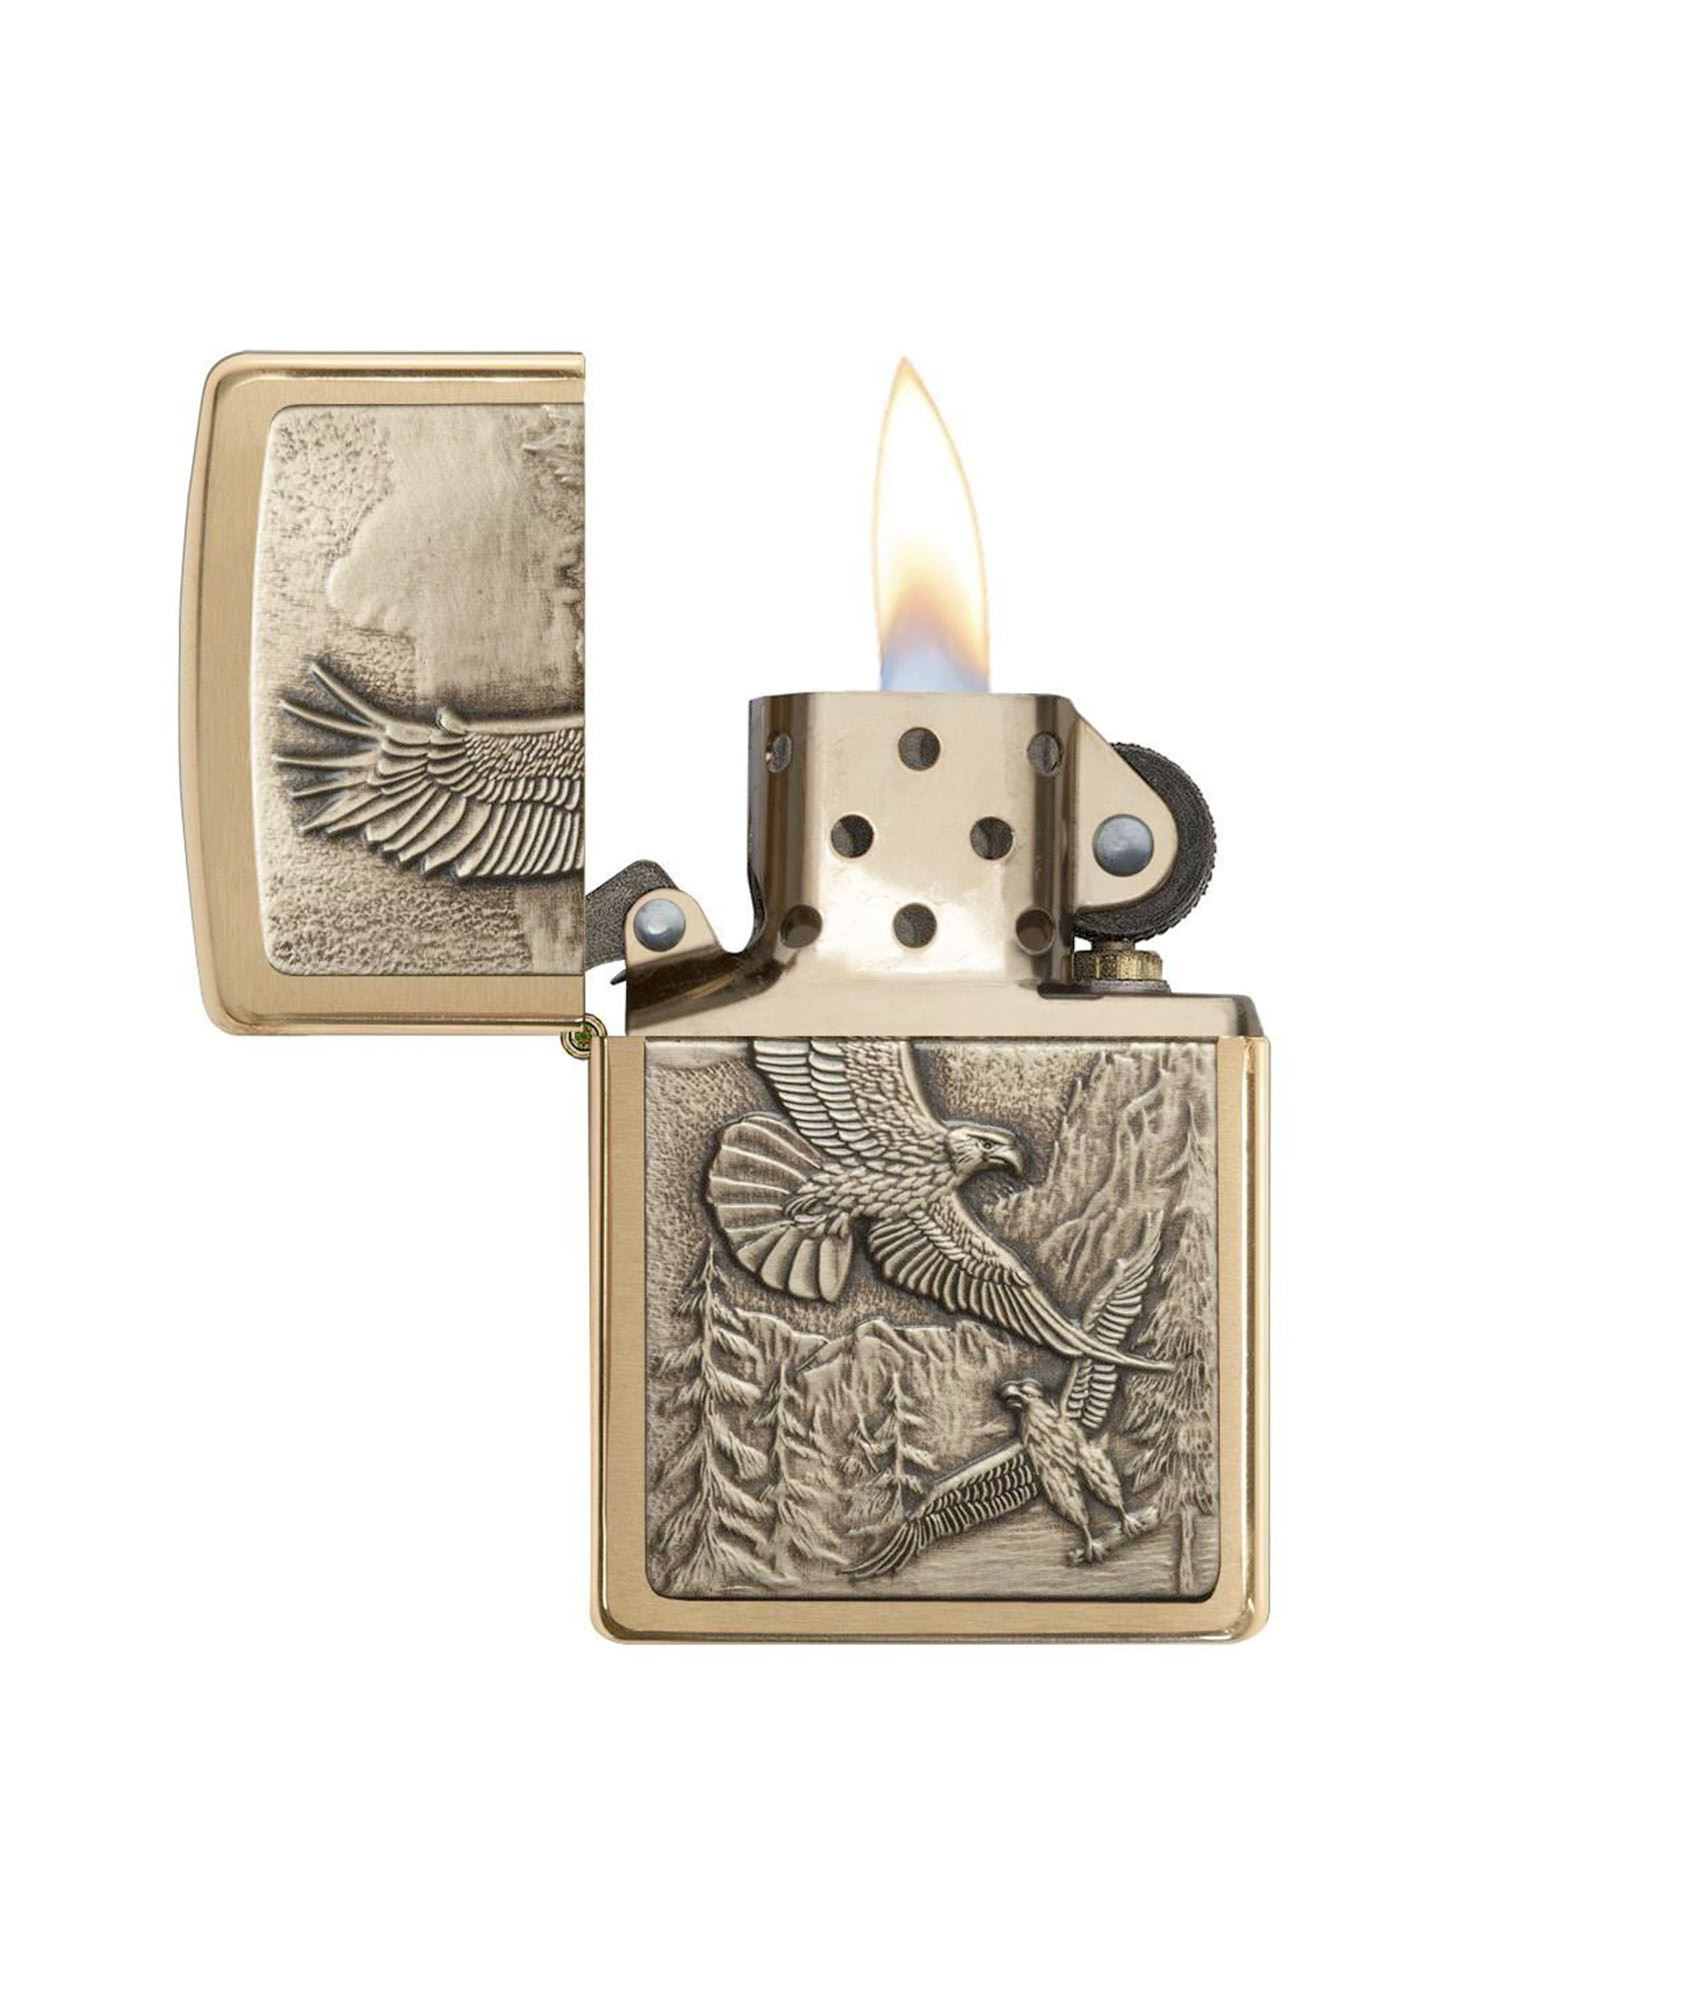 Soaring Eagle på fronten af Zippo lighter - where eagles dare